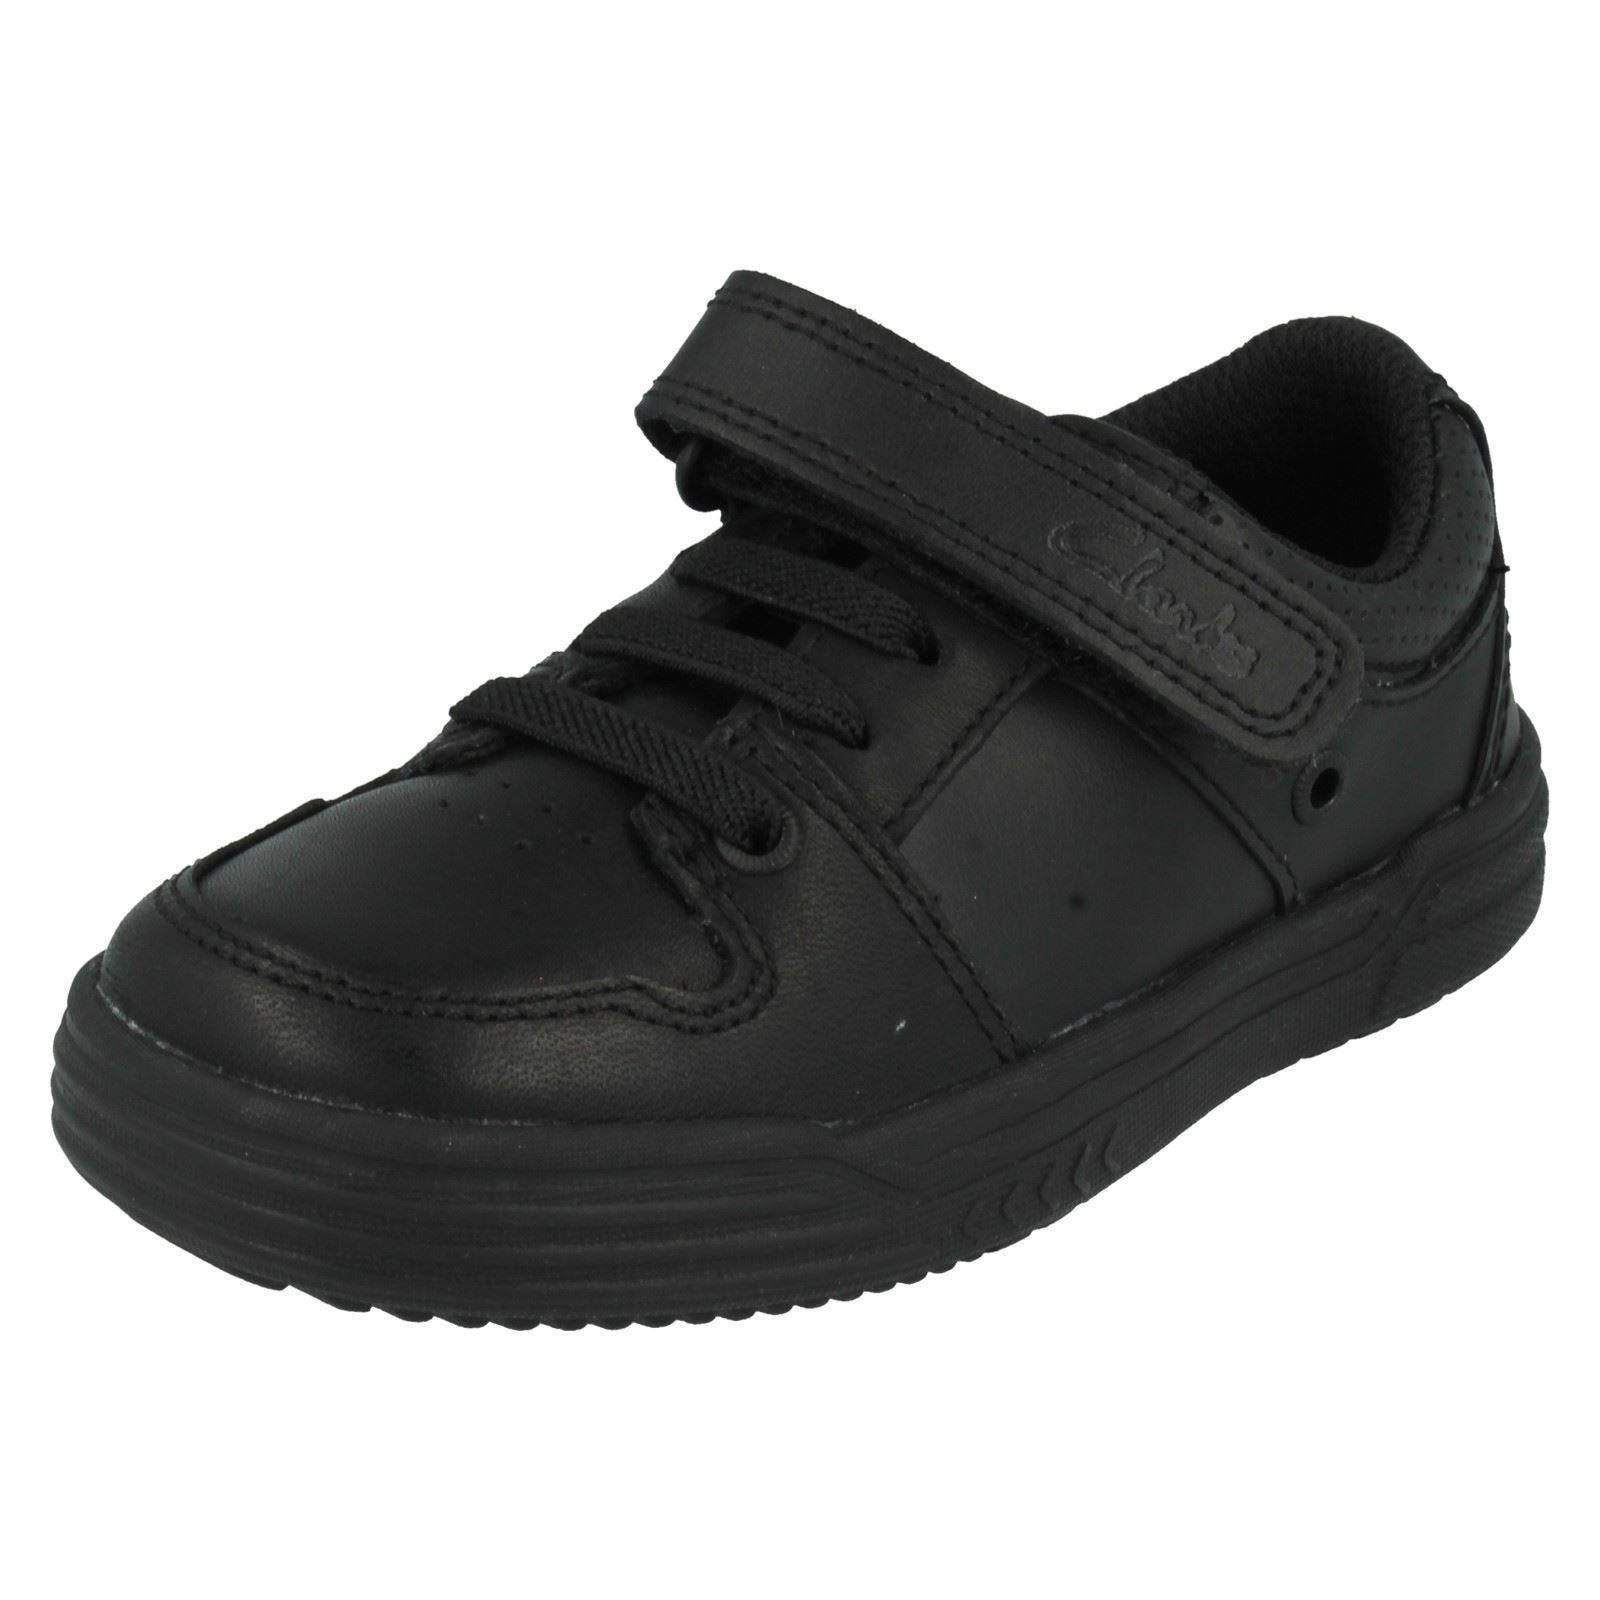 Boys Clarks Shoes Style - Chad Slide